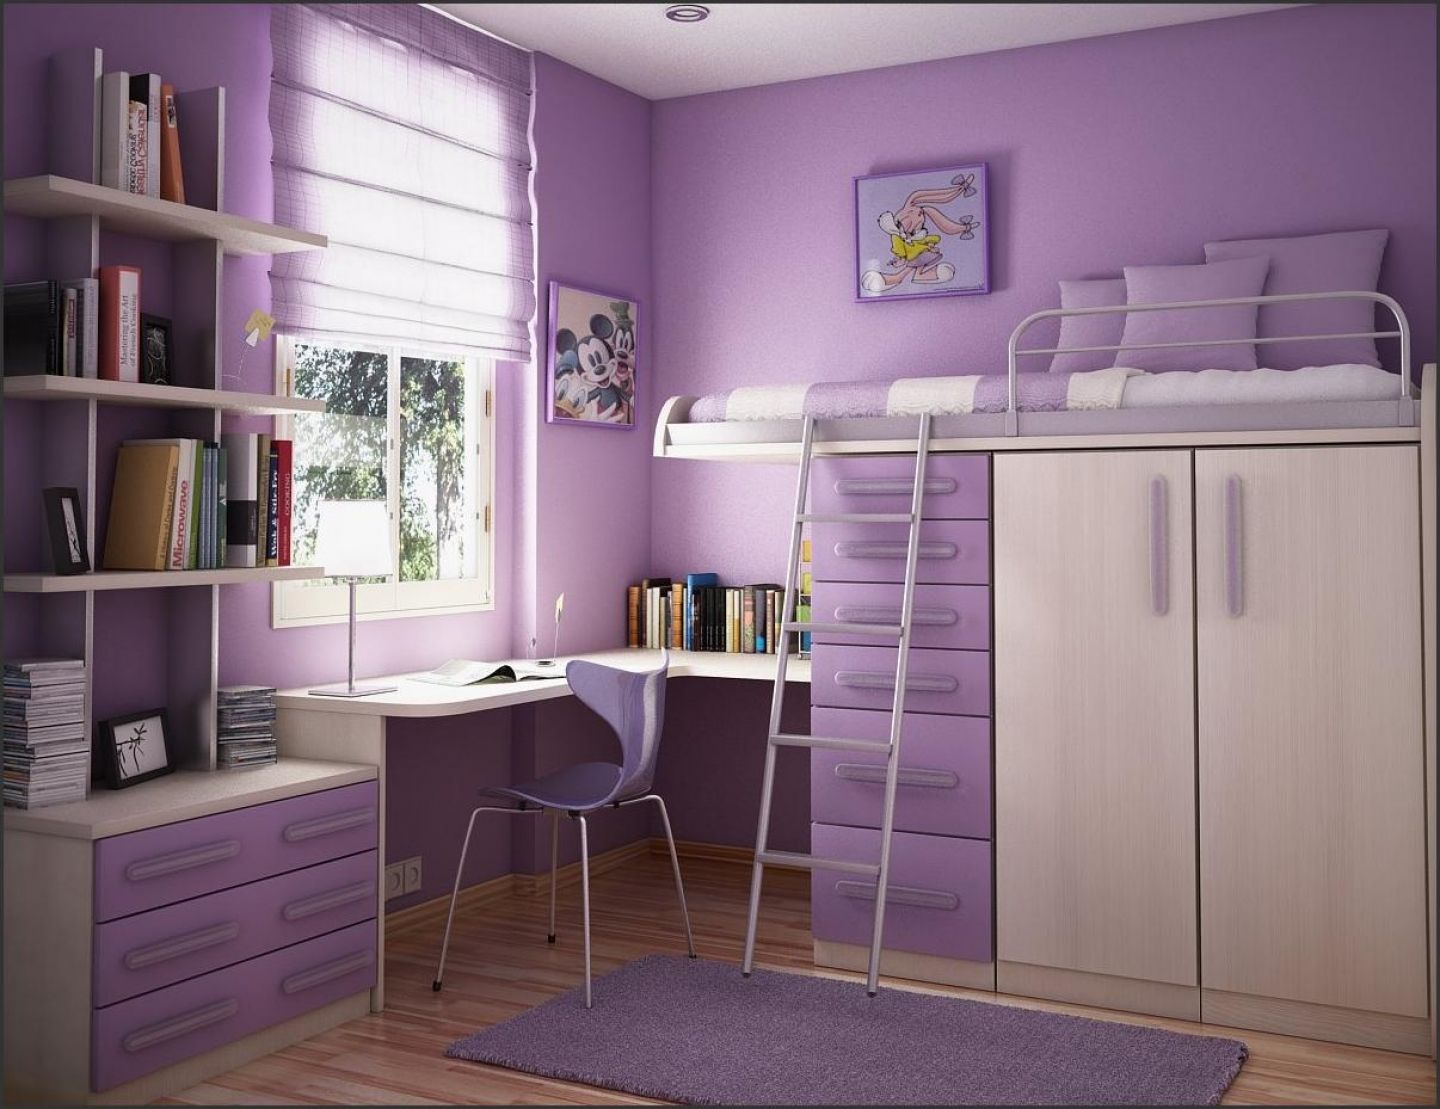 teen girl bedroom decorating ideas 06 13 1403 - Decorating Ideas For Teenage Girl Bedroom